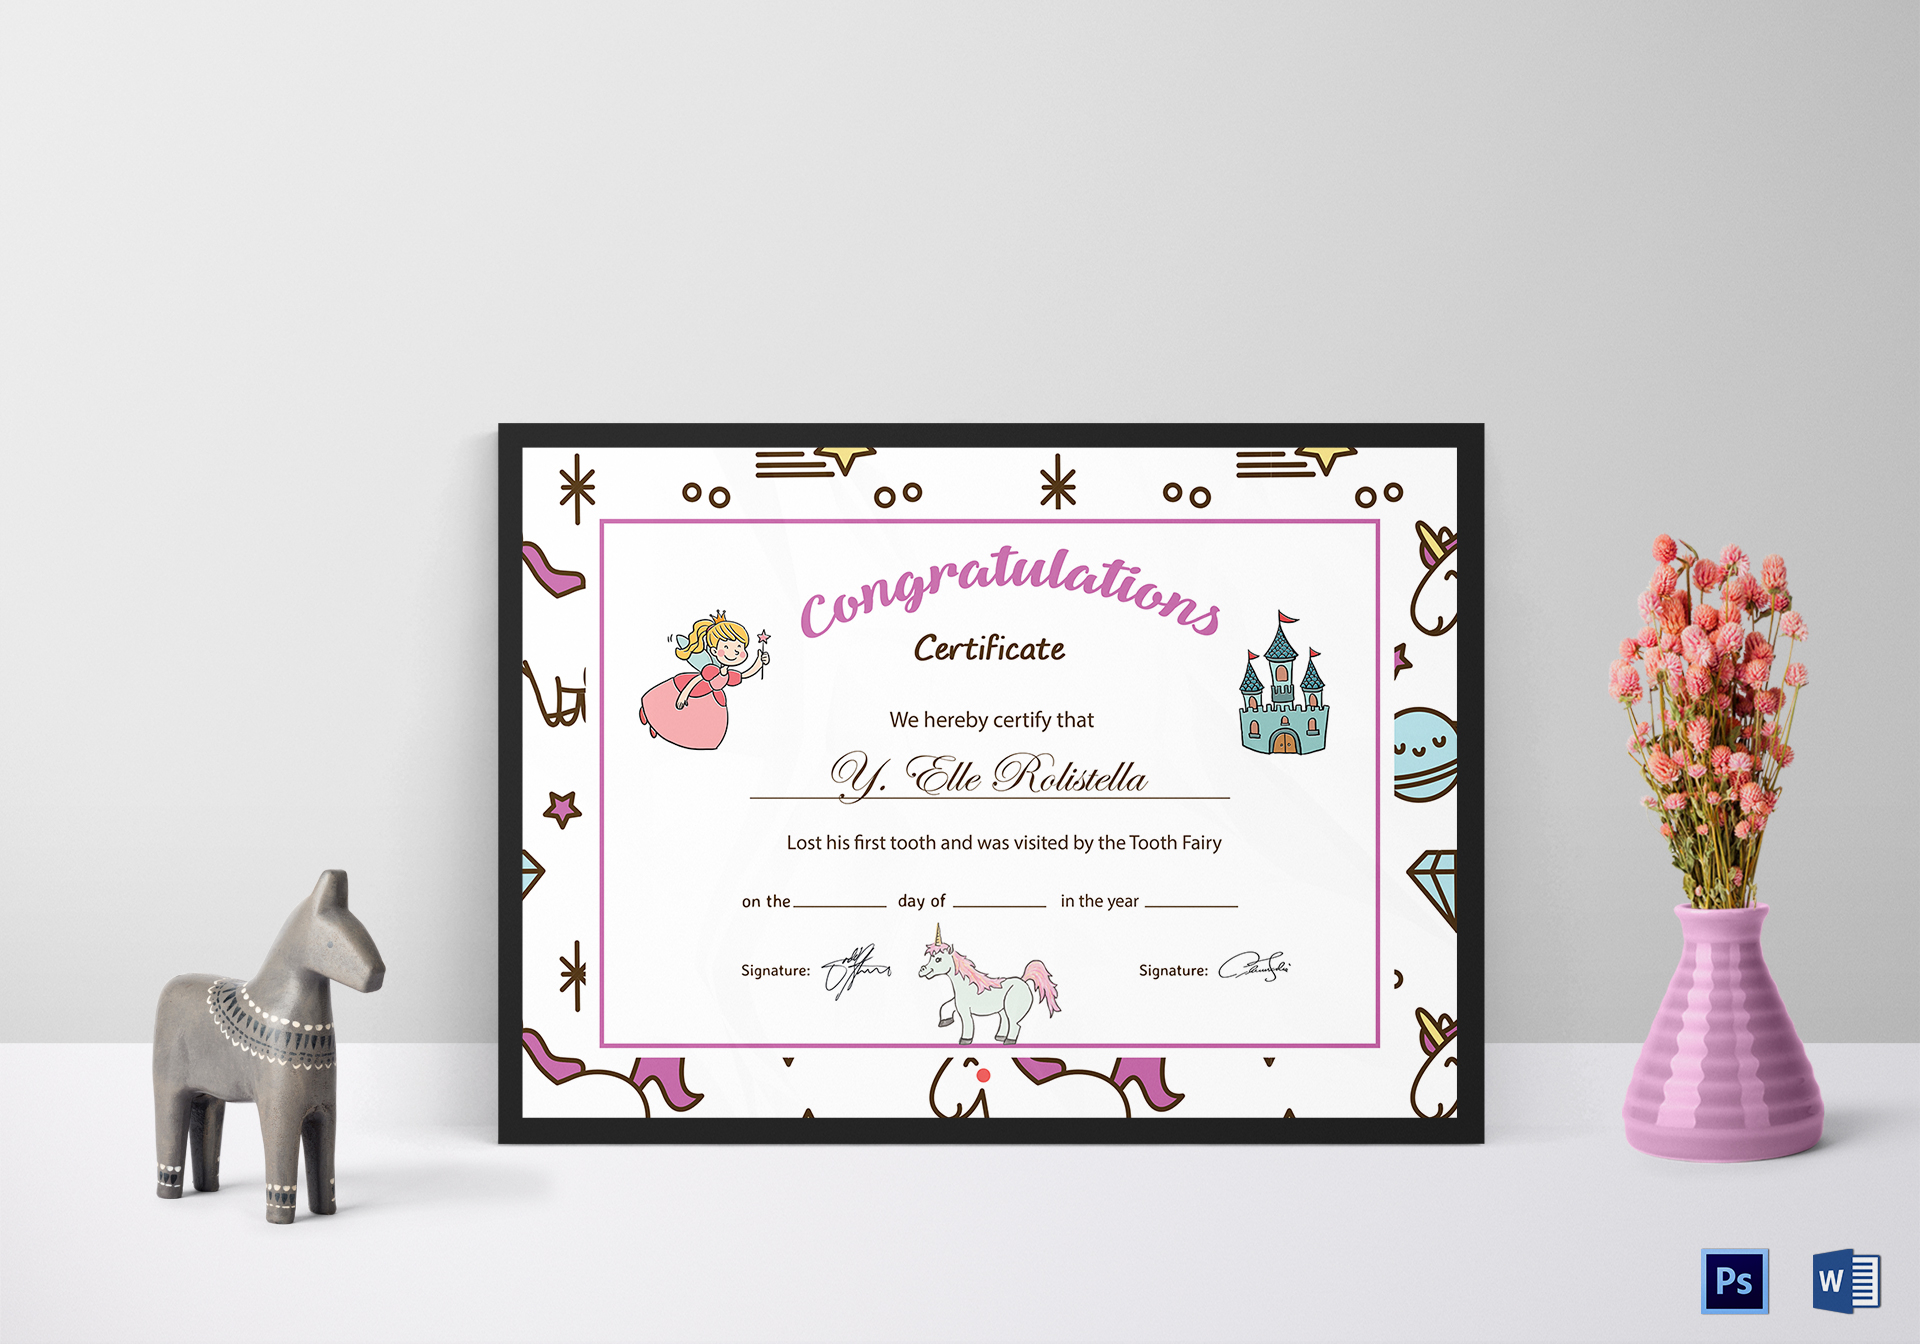 Tooth Fairy Congratulation Certificate Template